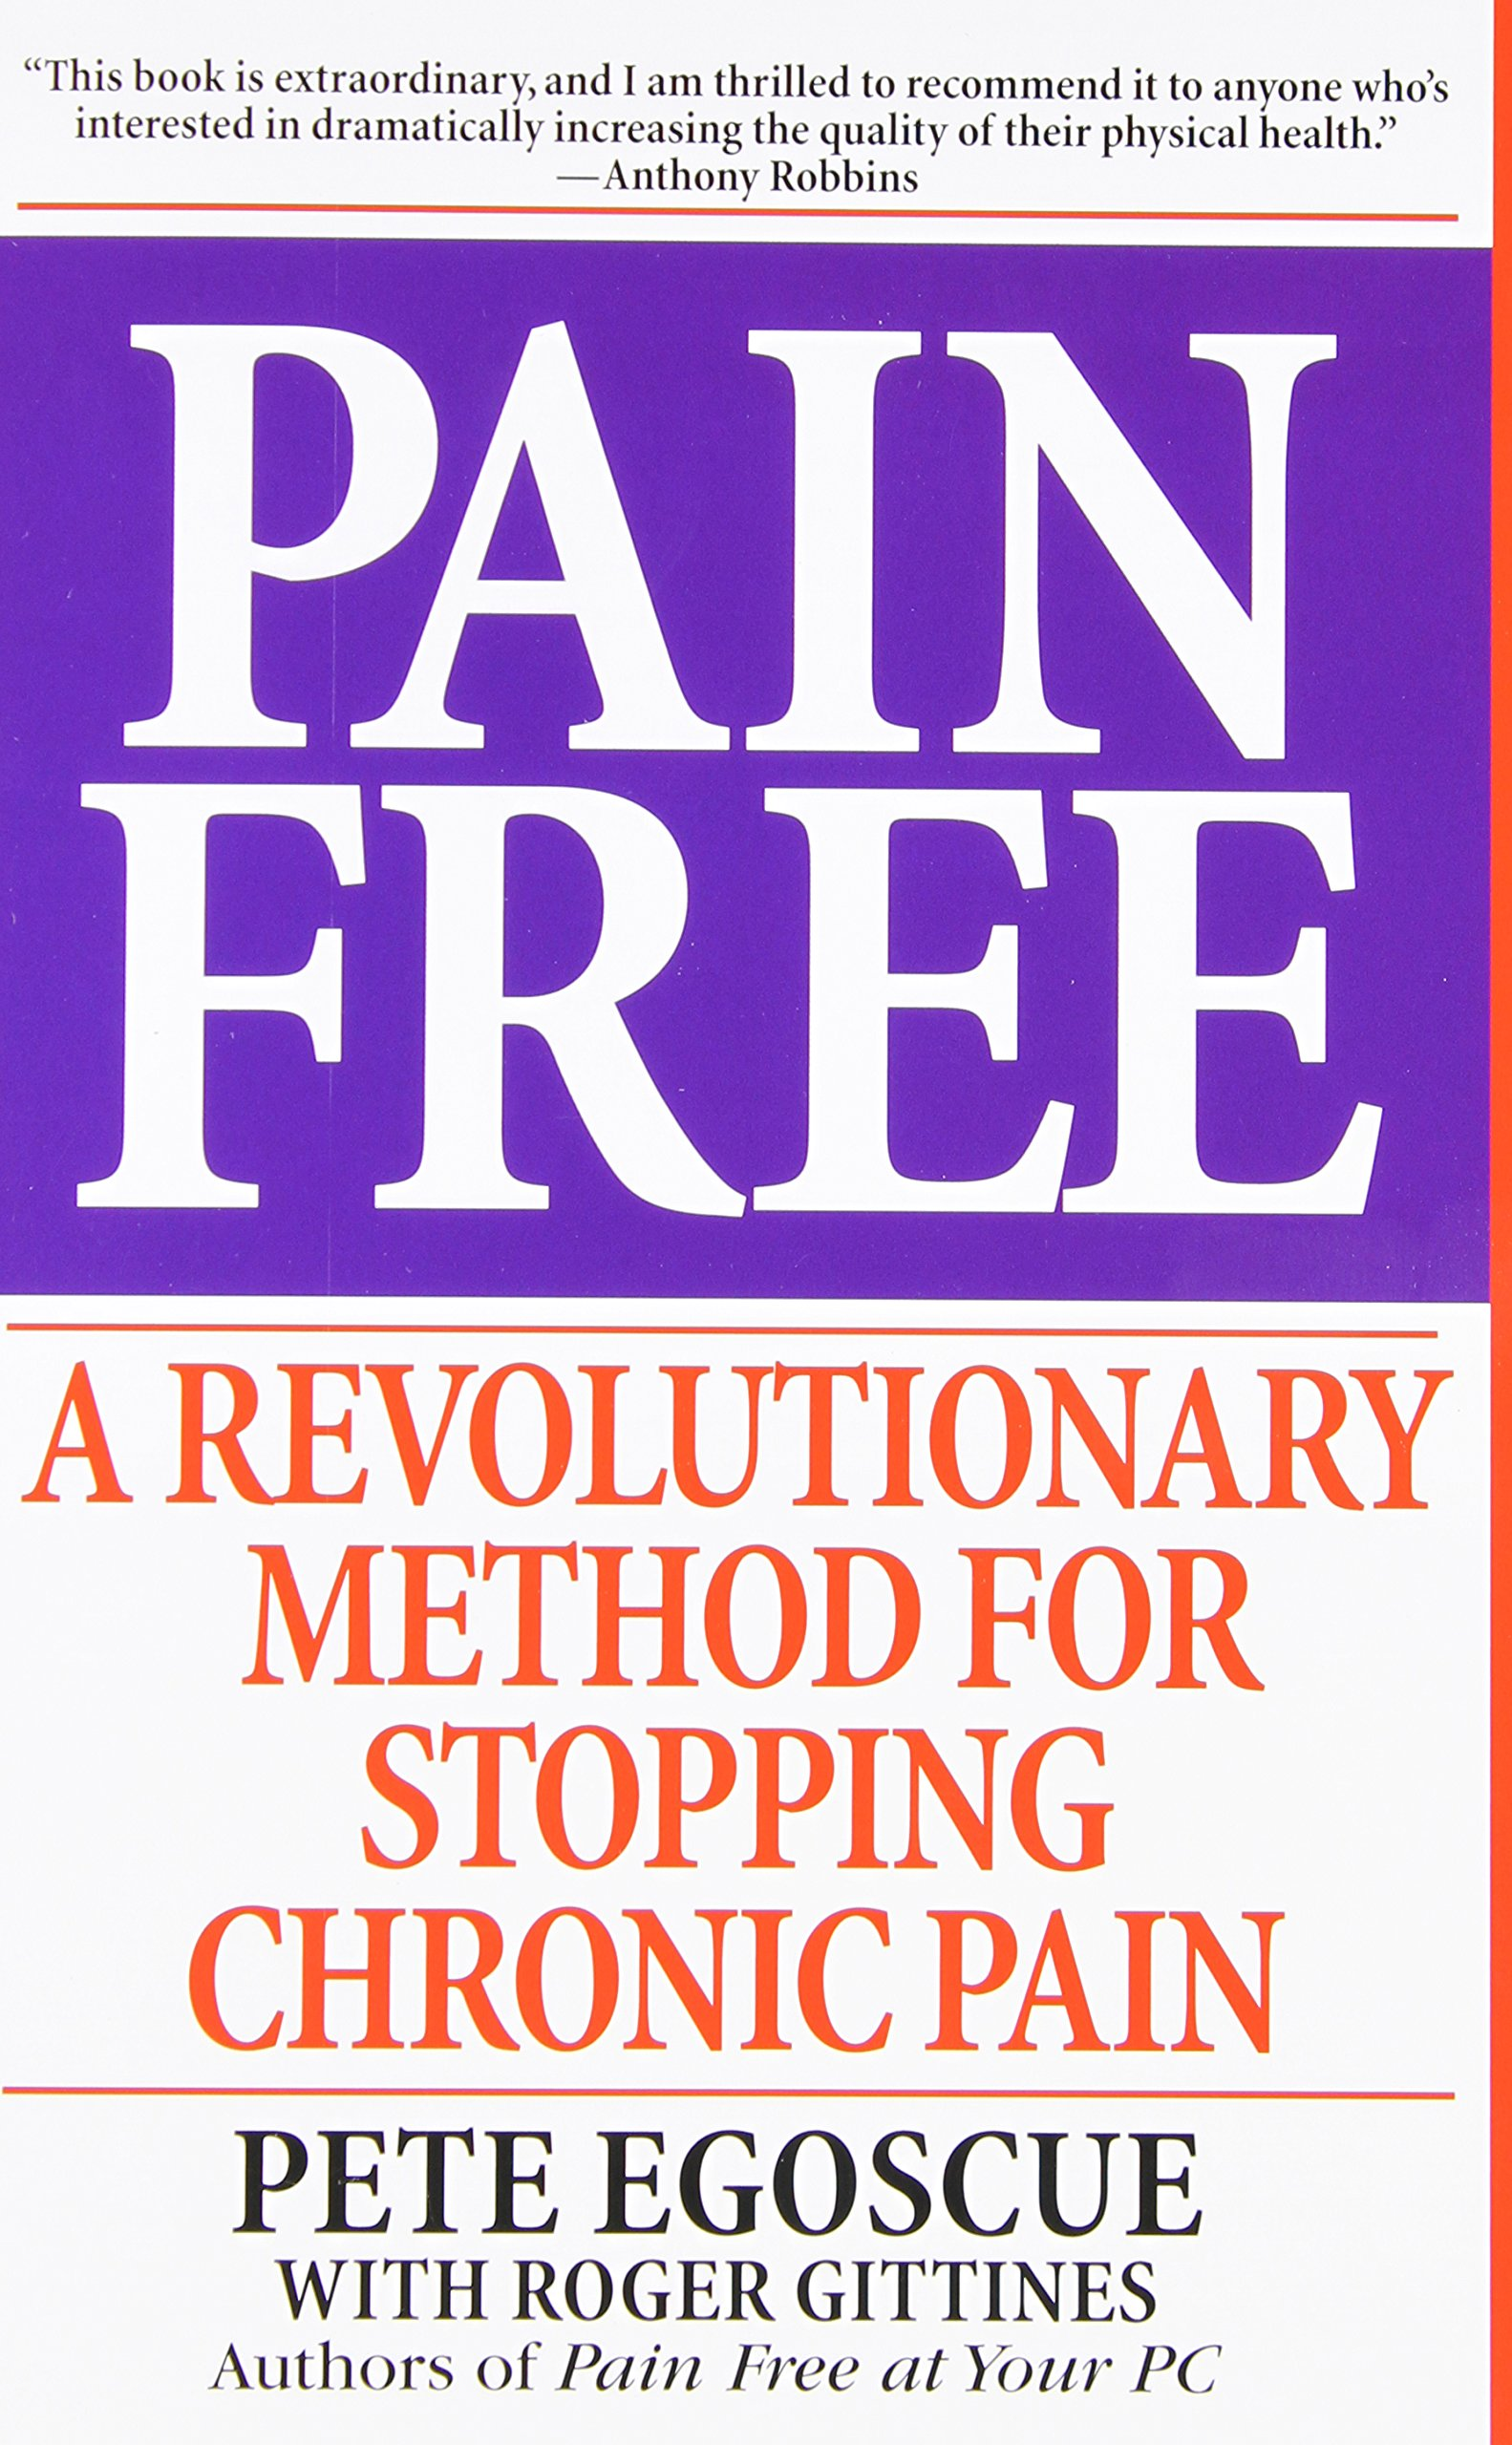 Pain Free Revolutionary Stopping Chronic product image